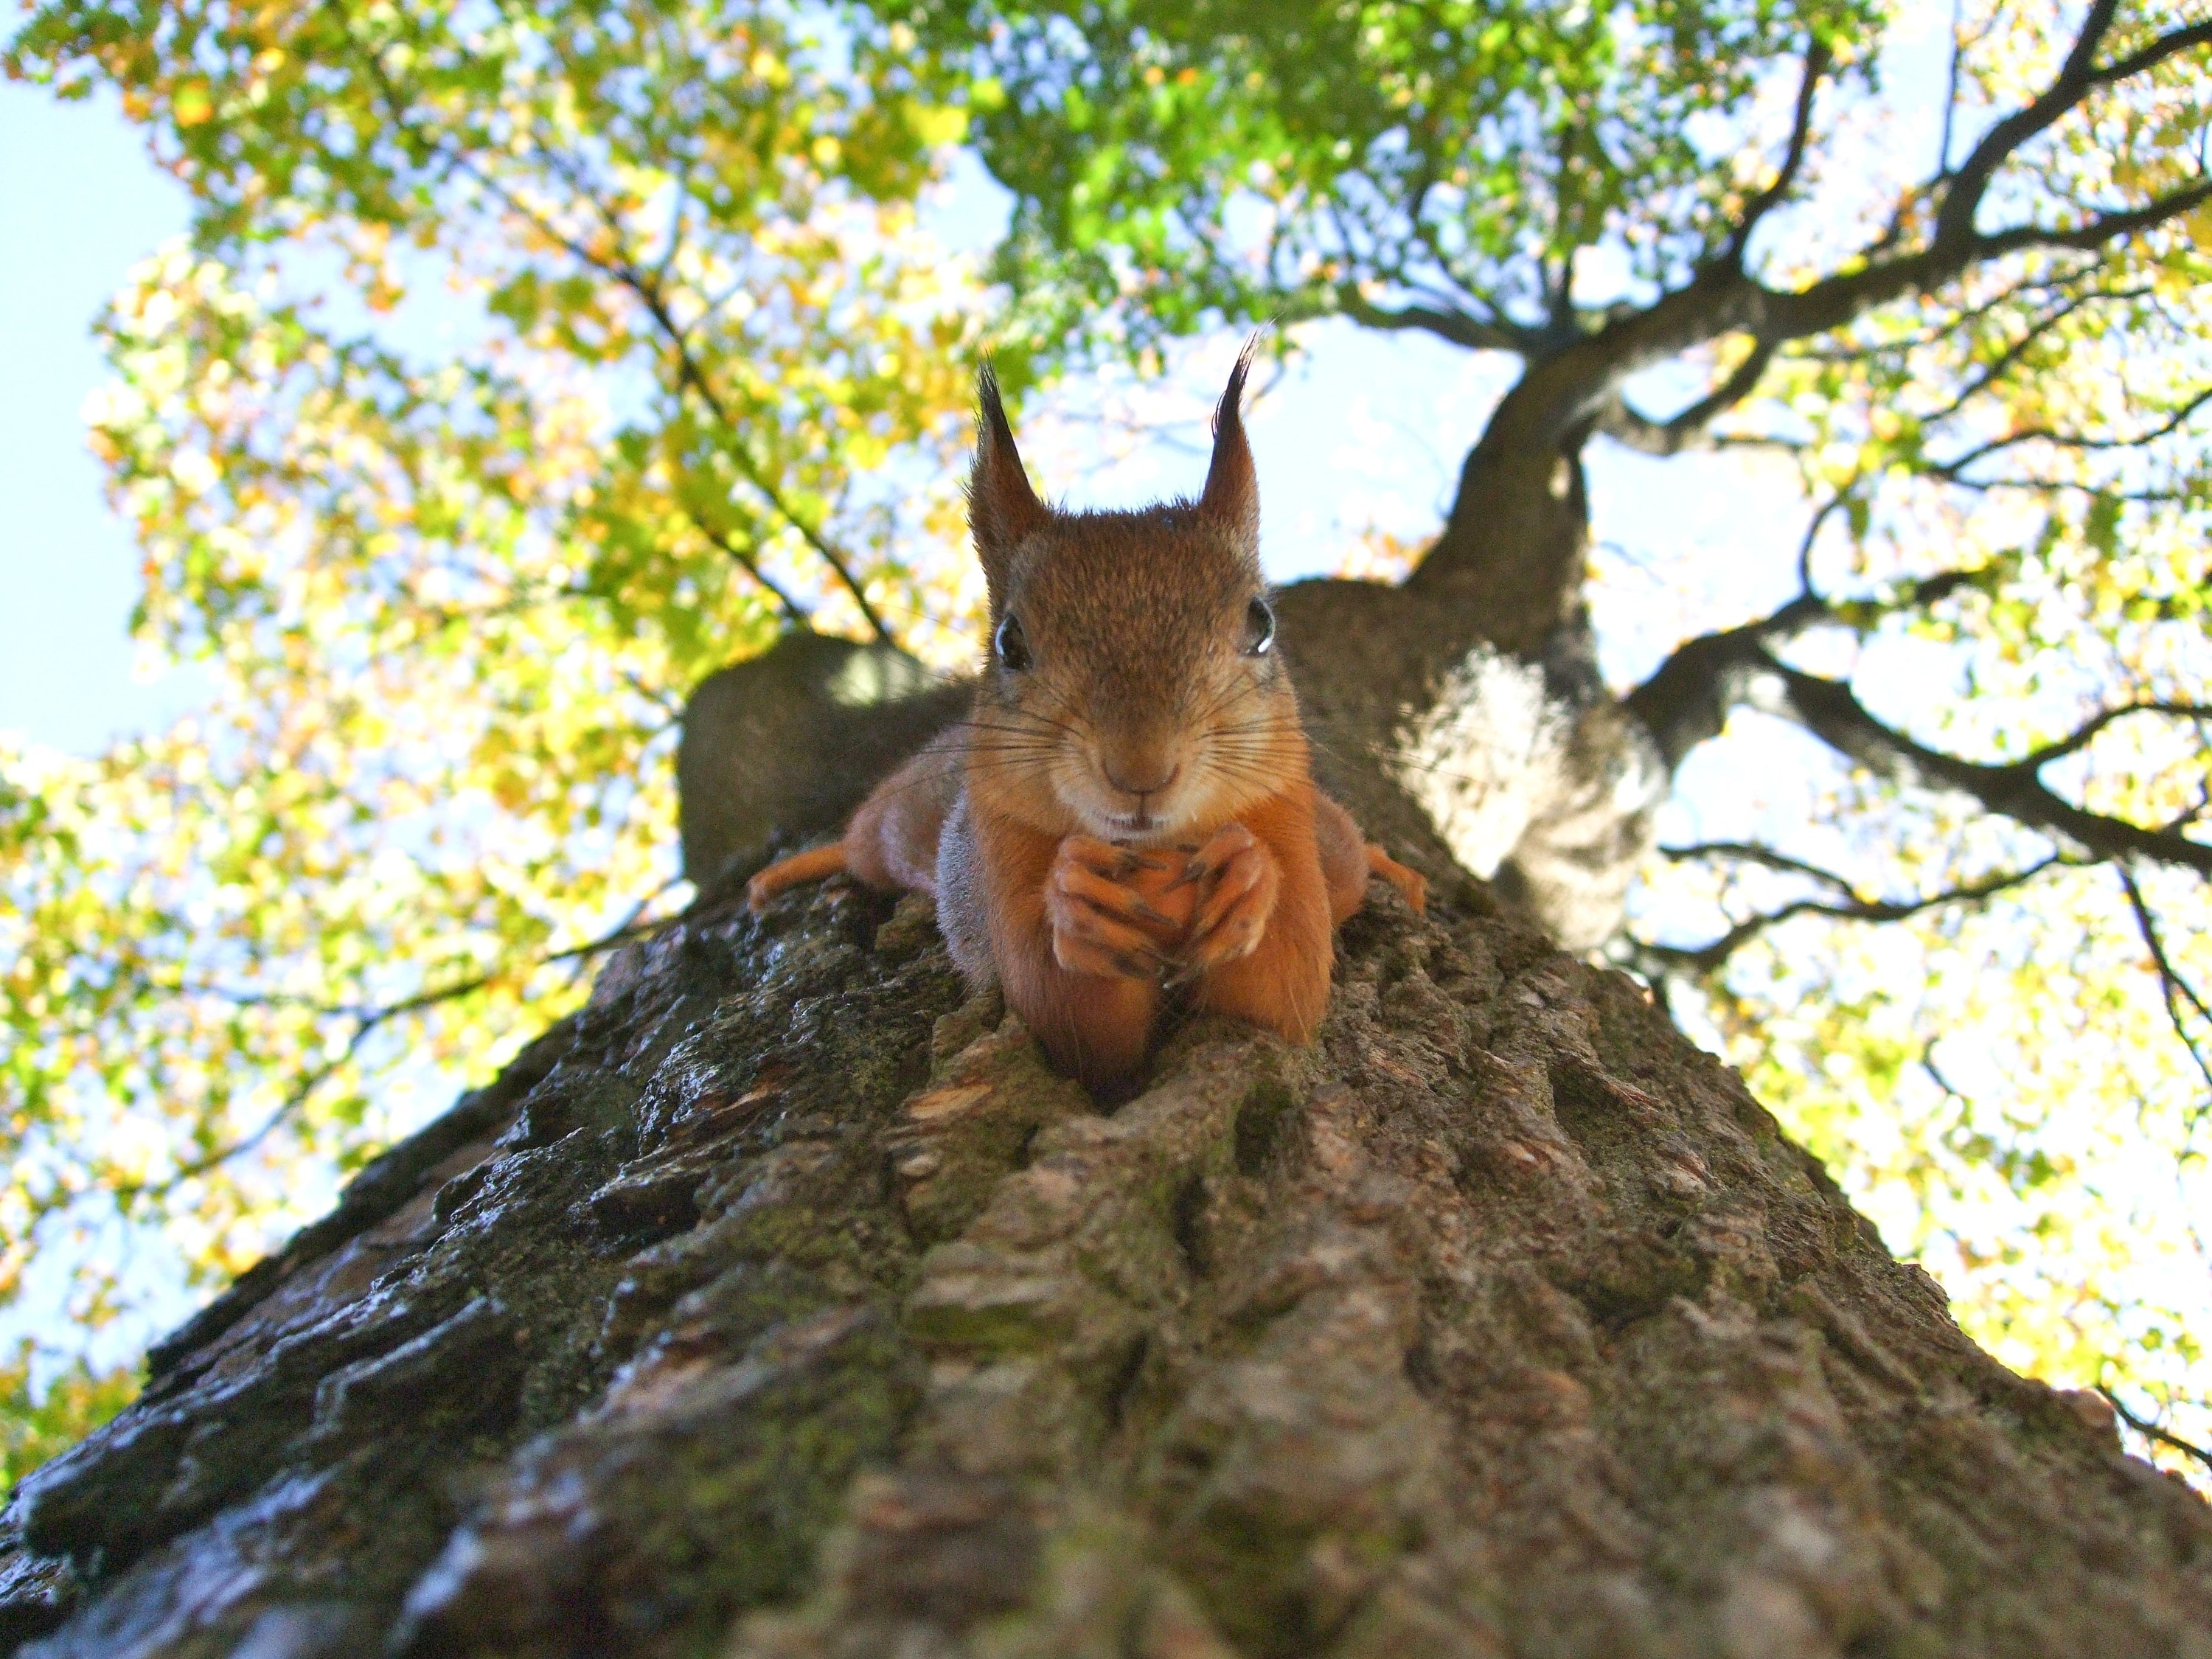 Taken from below, a squirrel is holding its hands together as it clings to a tree